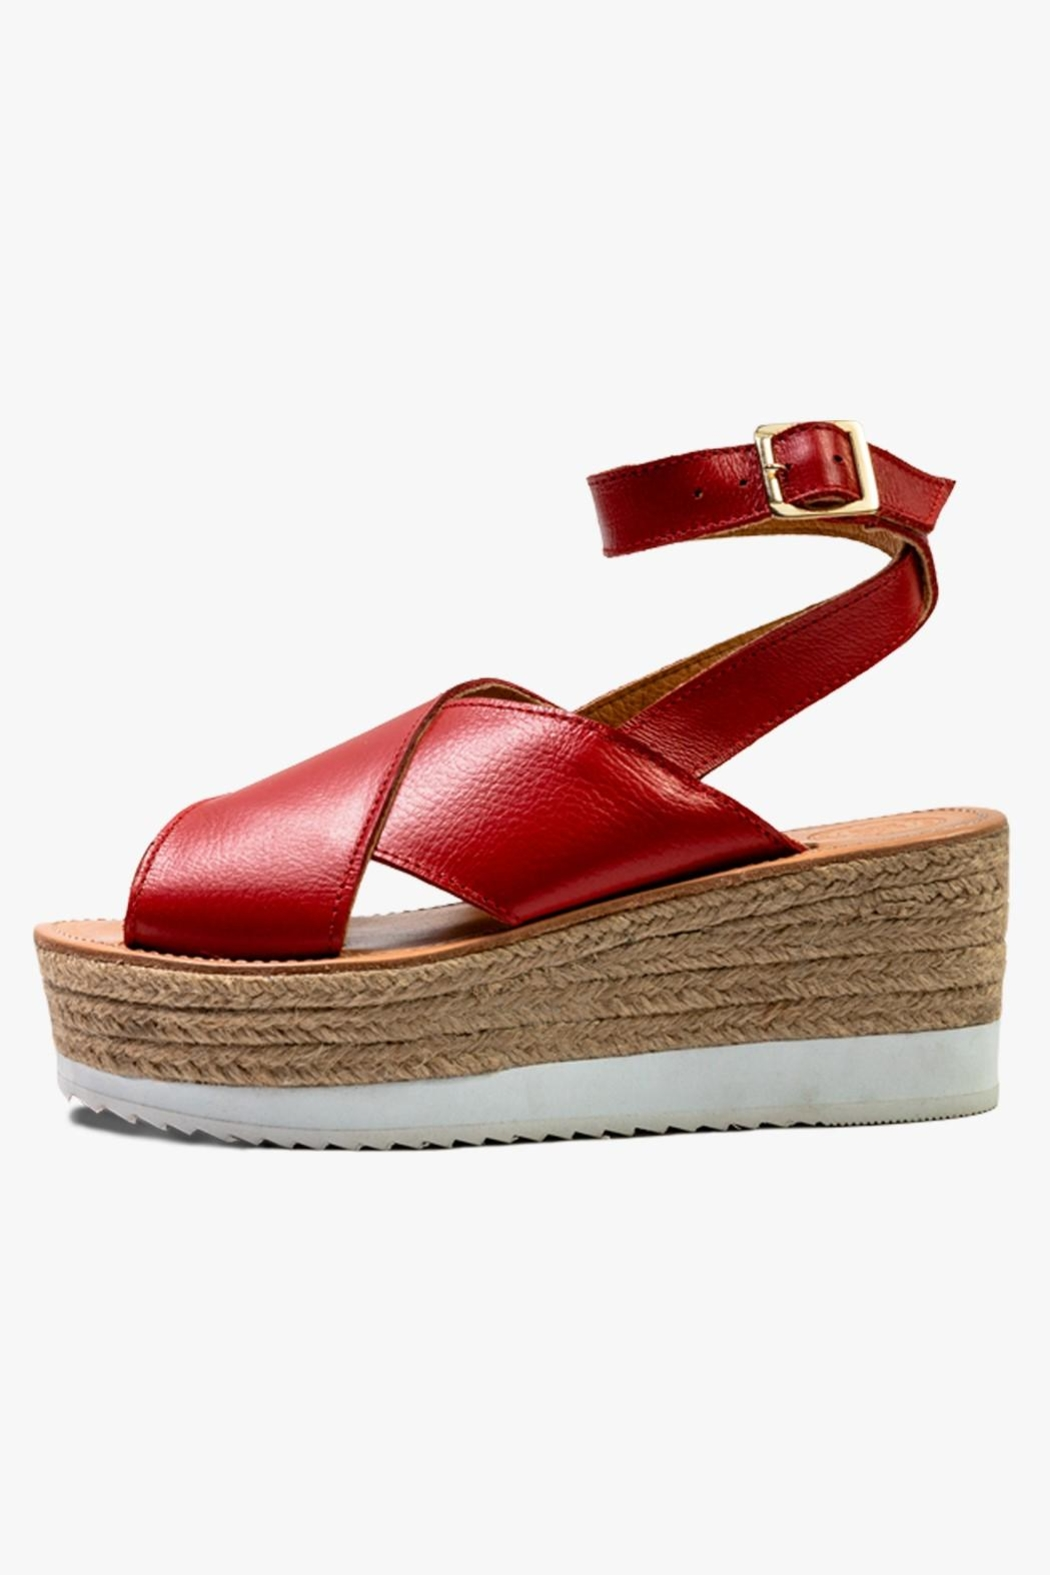 Morkas Shoes Red Leather Espadrille - Main Image